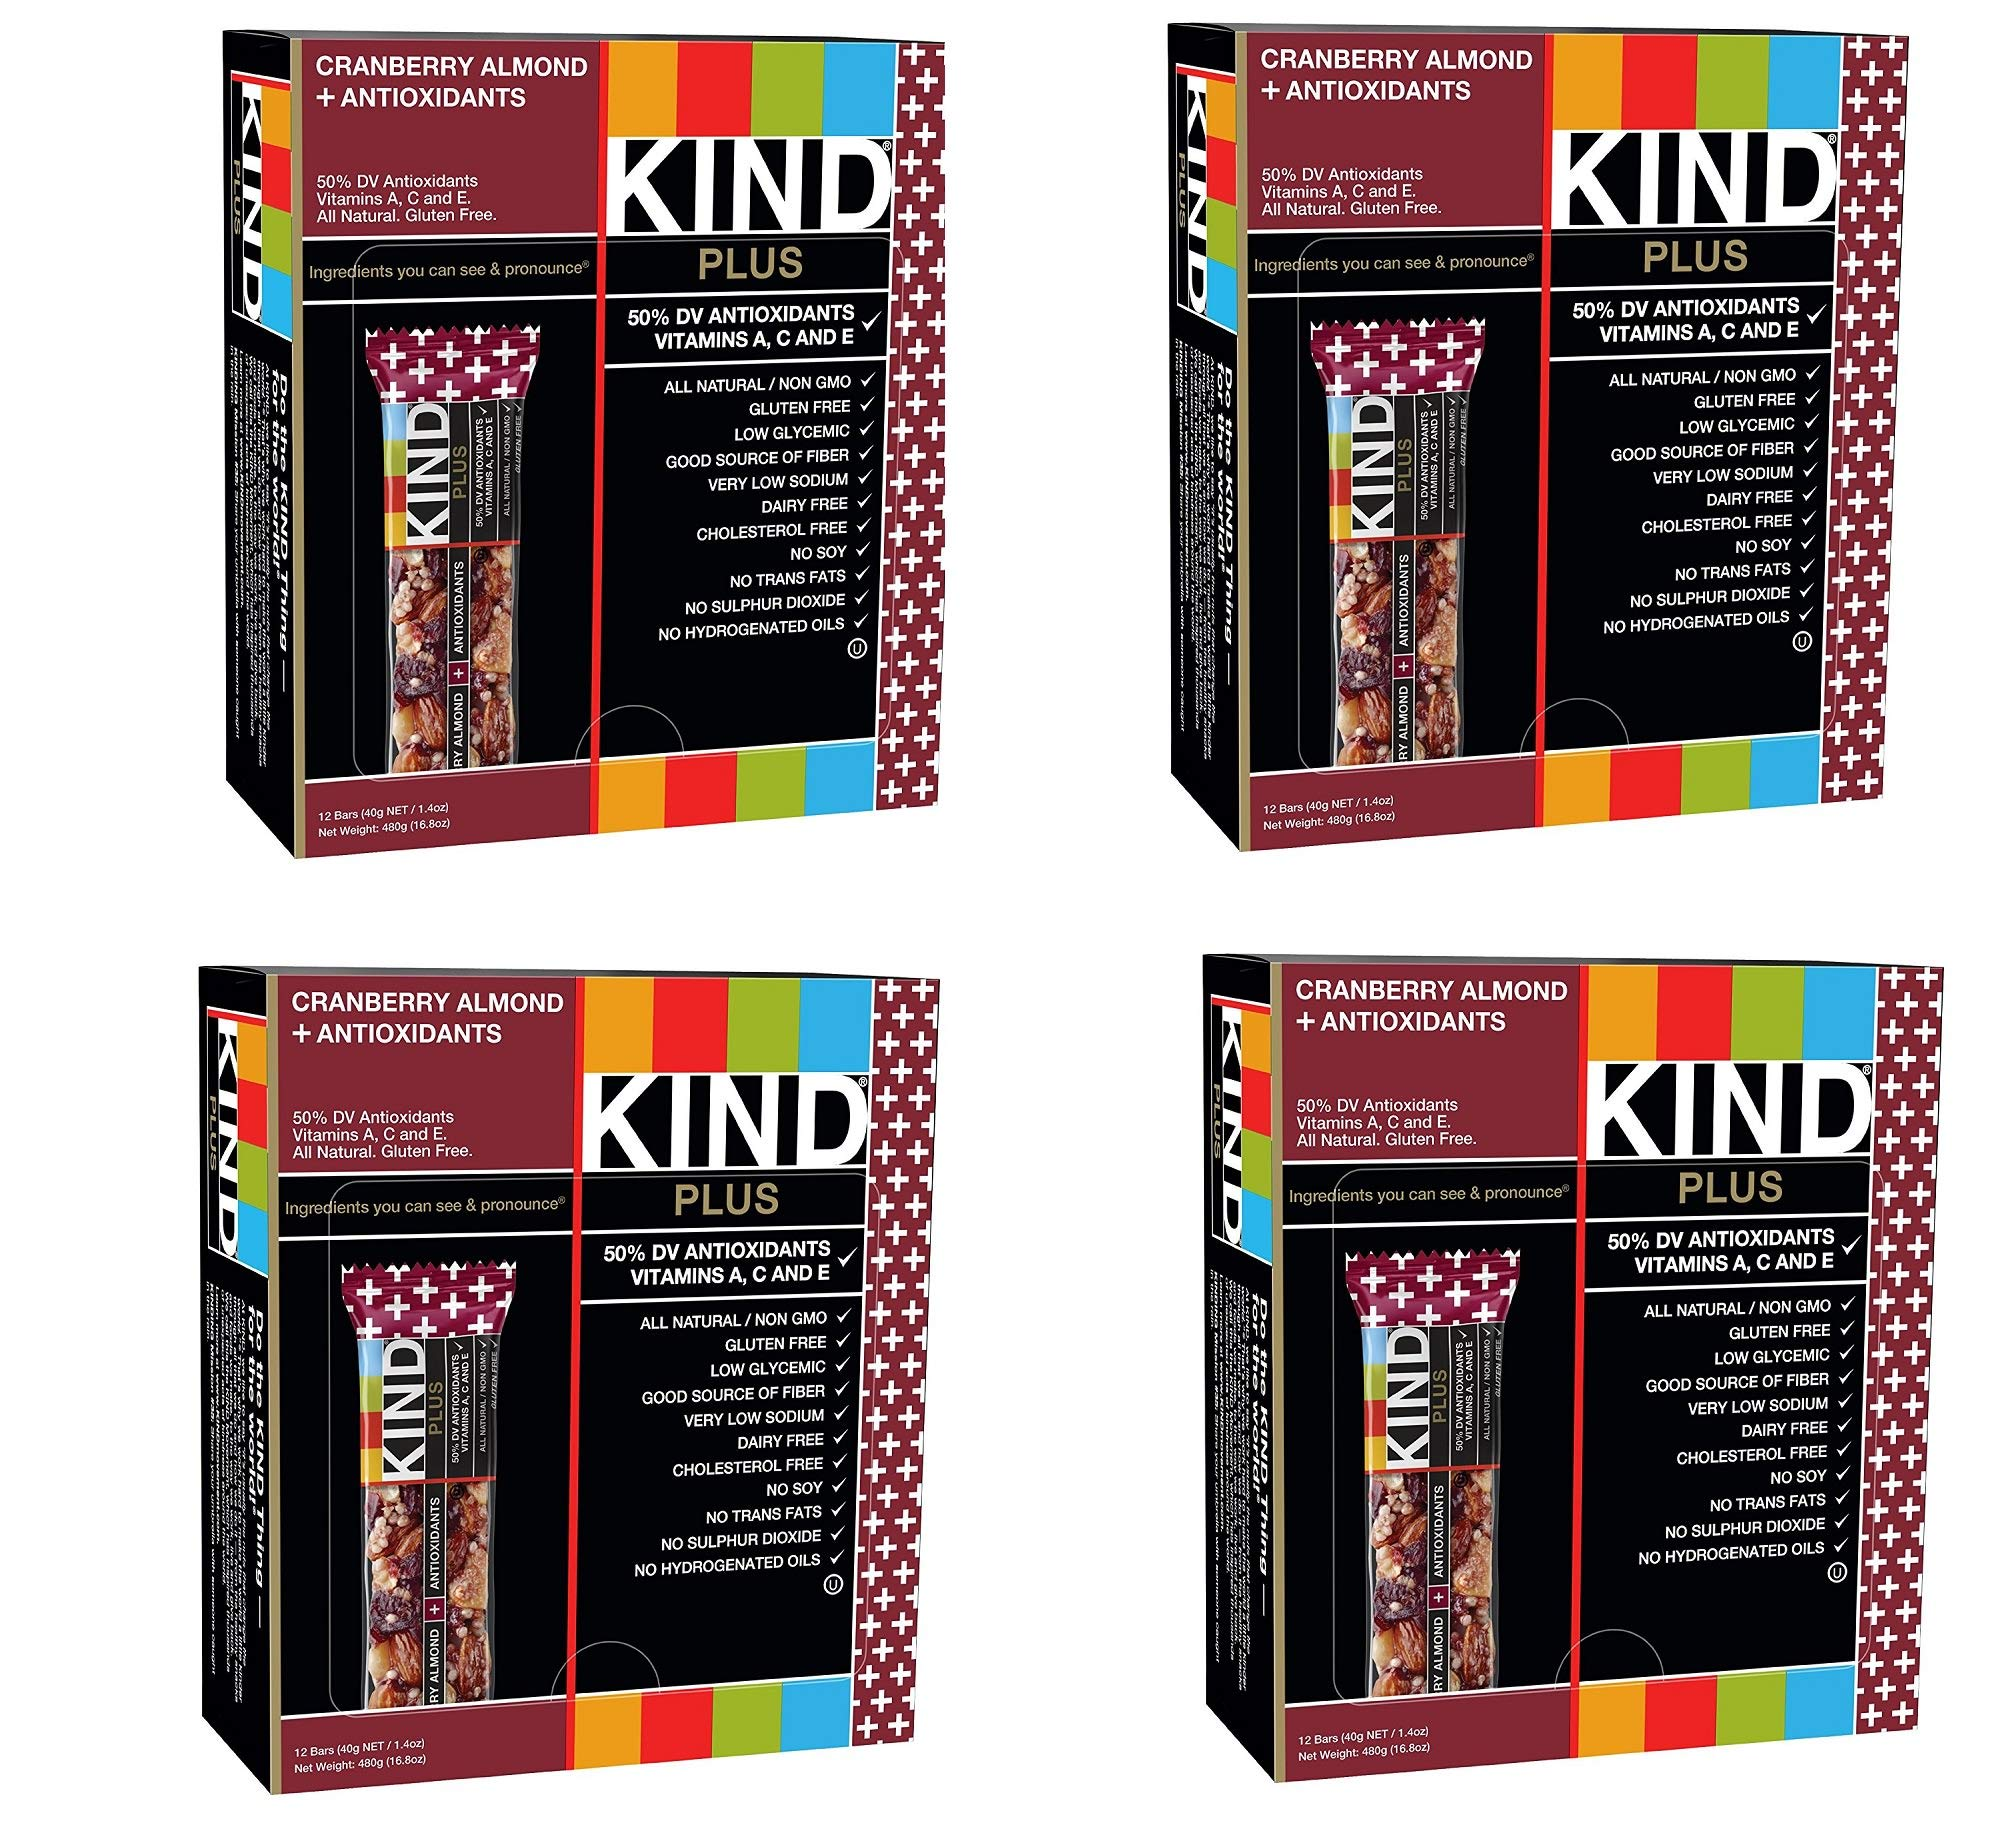 KIND Bars, Cranberry Almond plus Antioxidants with Macadamia Nuts, Gluten Free, Low Sugar, 1.4oz, 48 Bars